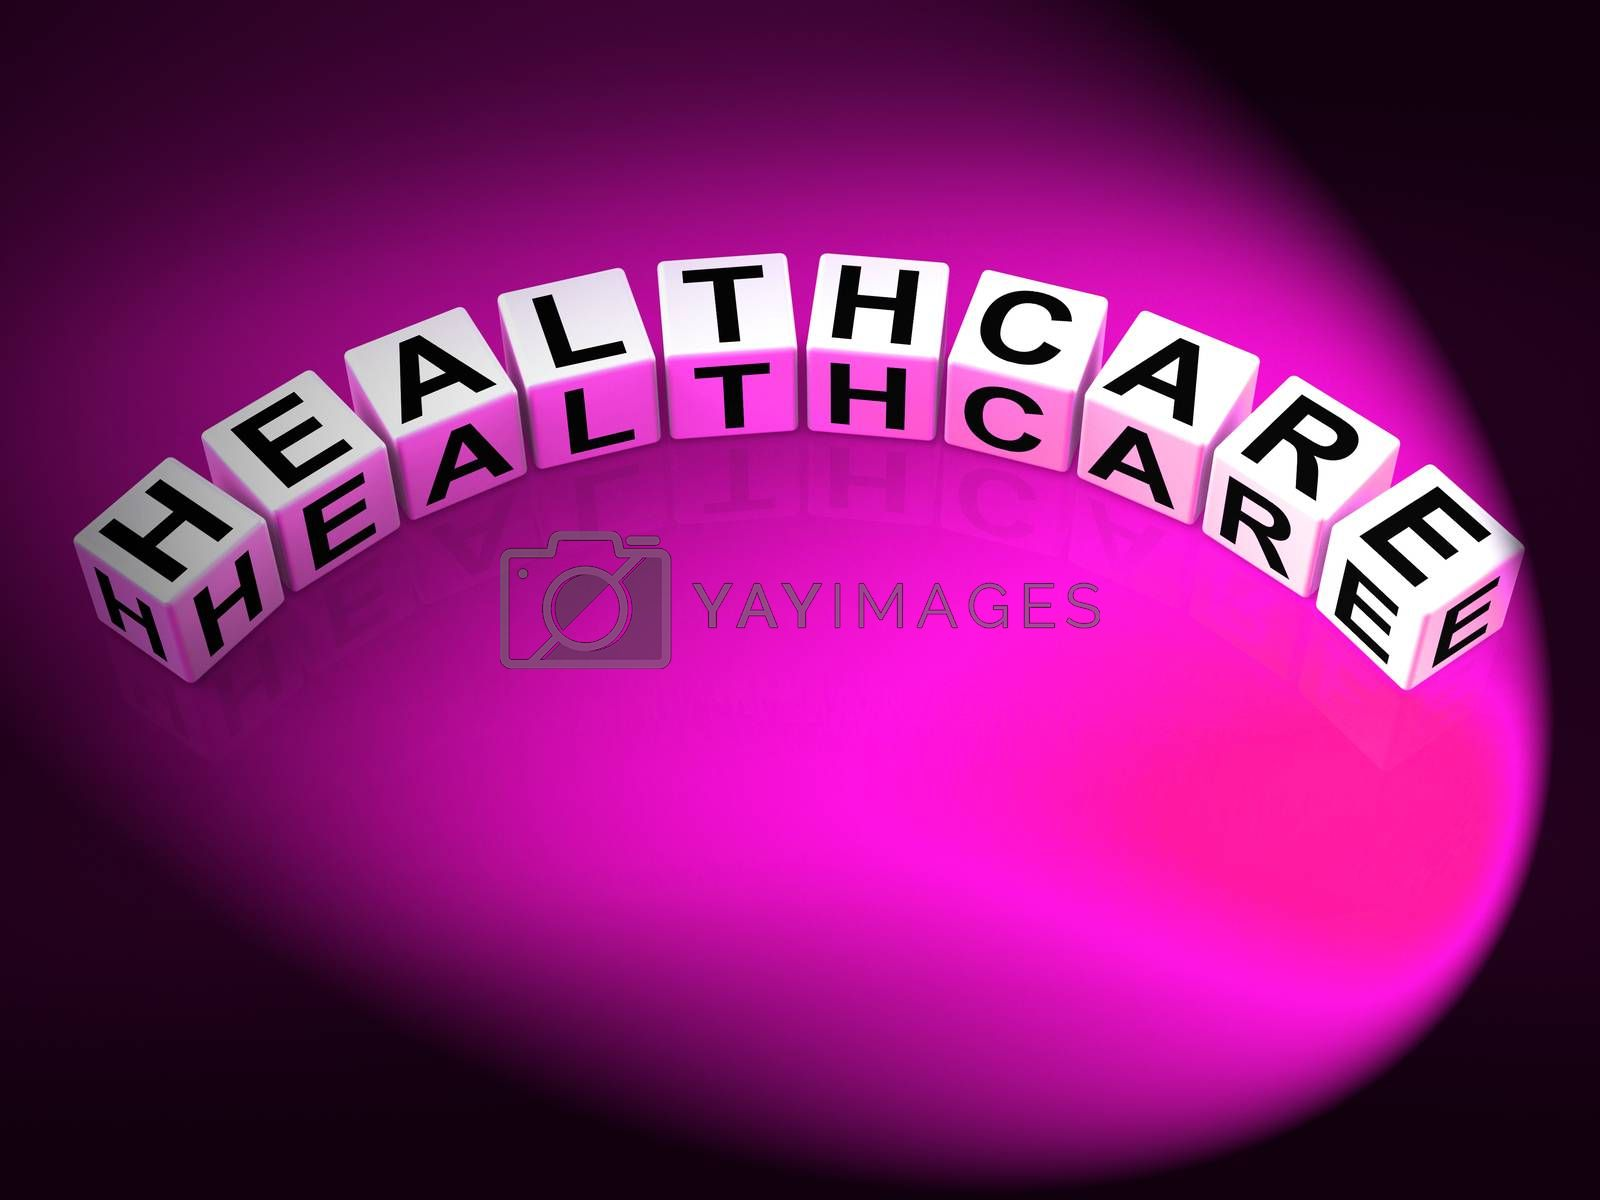 Healthcare Letters Show Medical Wellbeing And Health Checks by stuartmiles